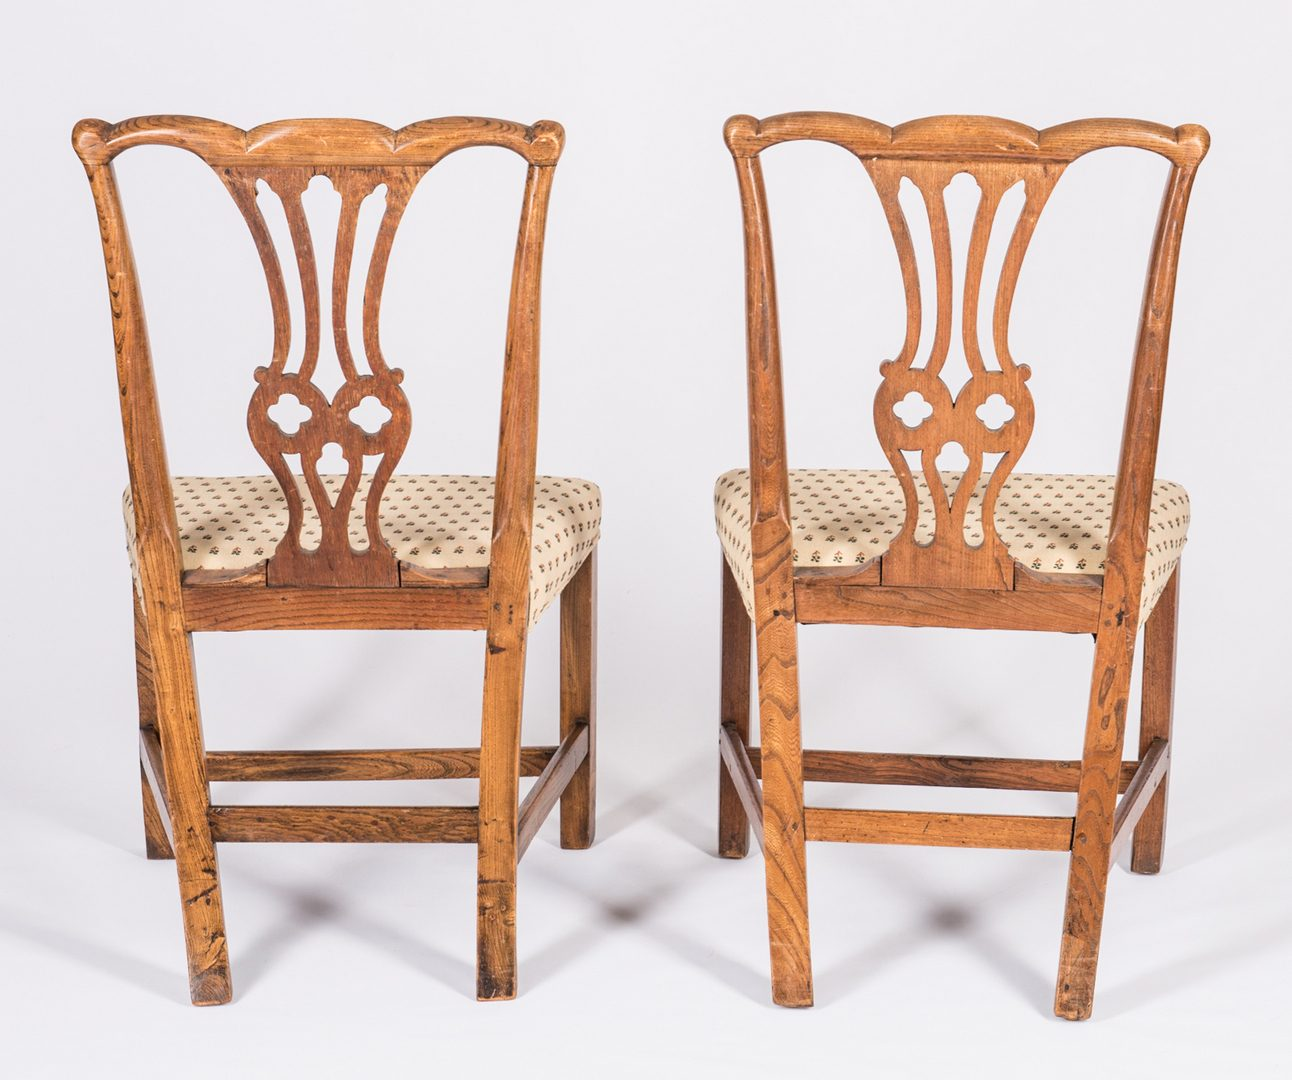 Lot 739: 5 English 18th Century Dining Chairs